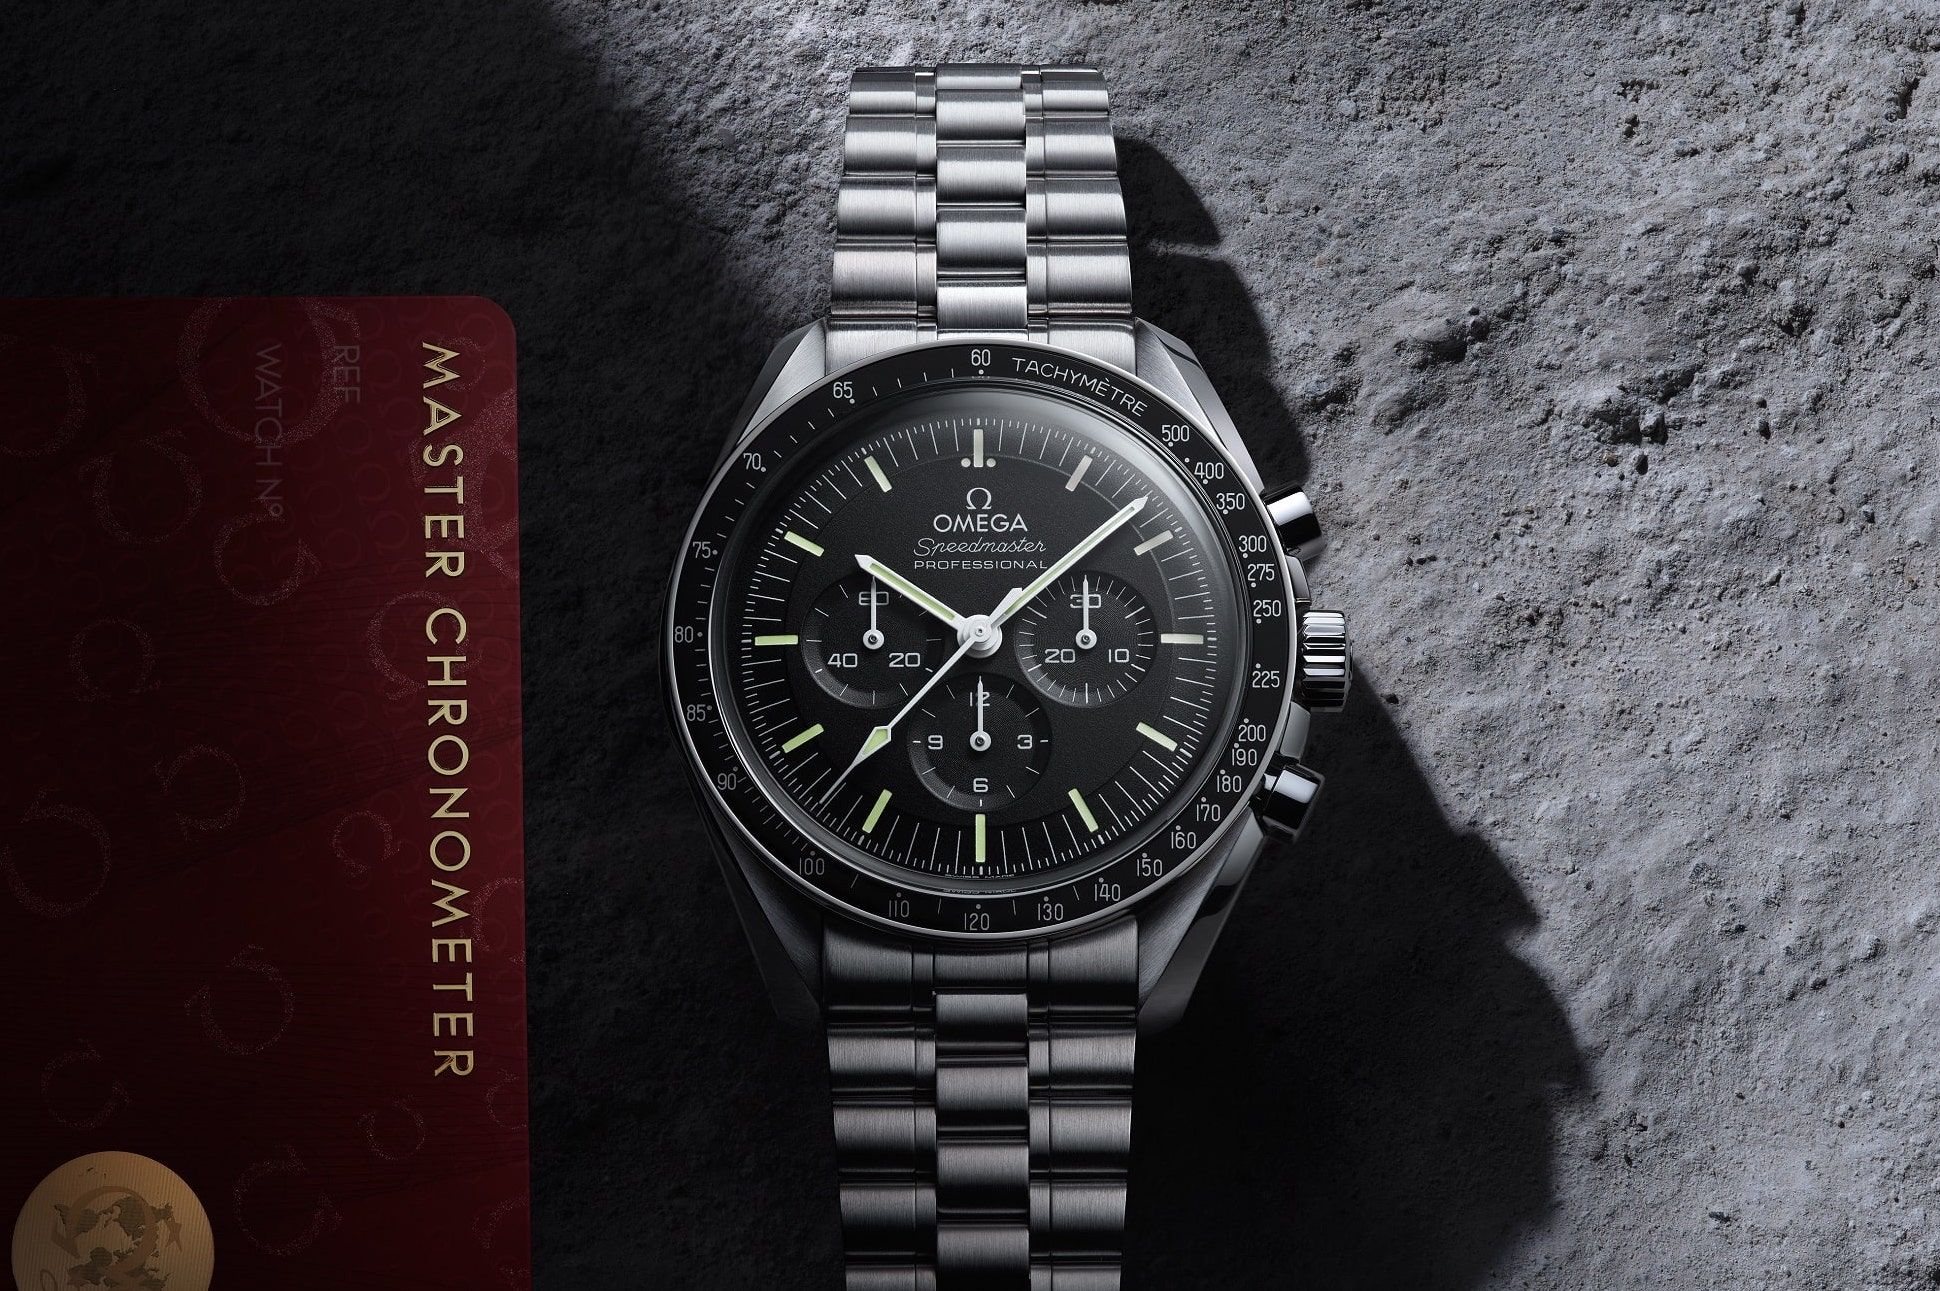 OMEGA's Latest Moonwatch Now Master Chronometer Certified